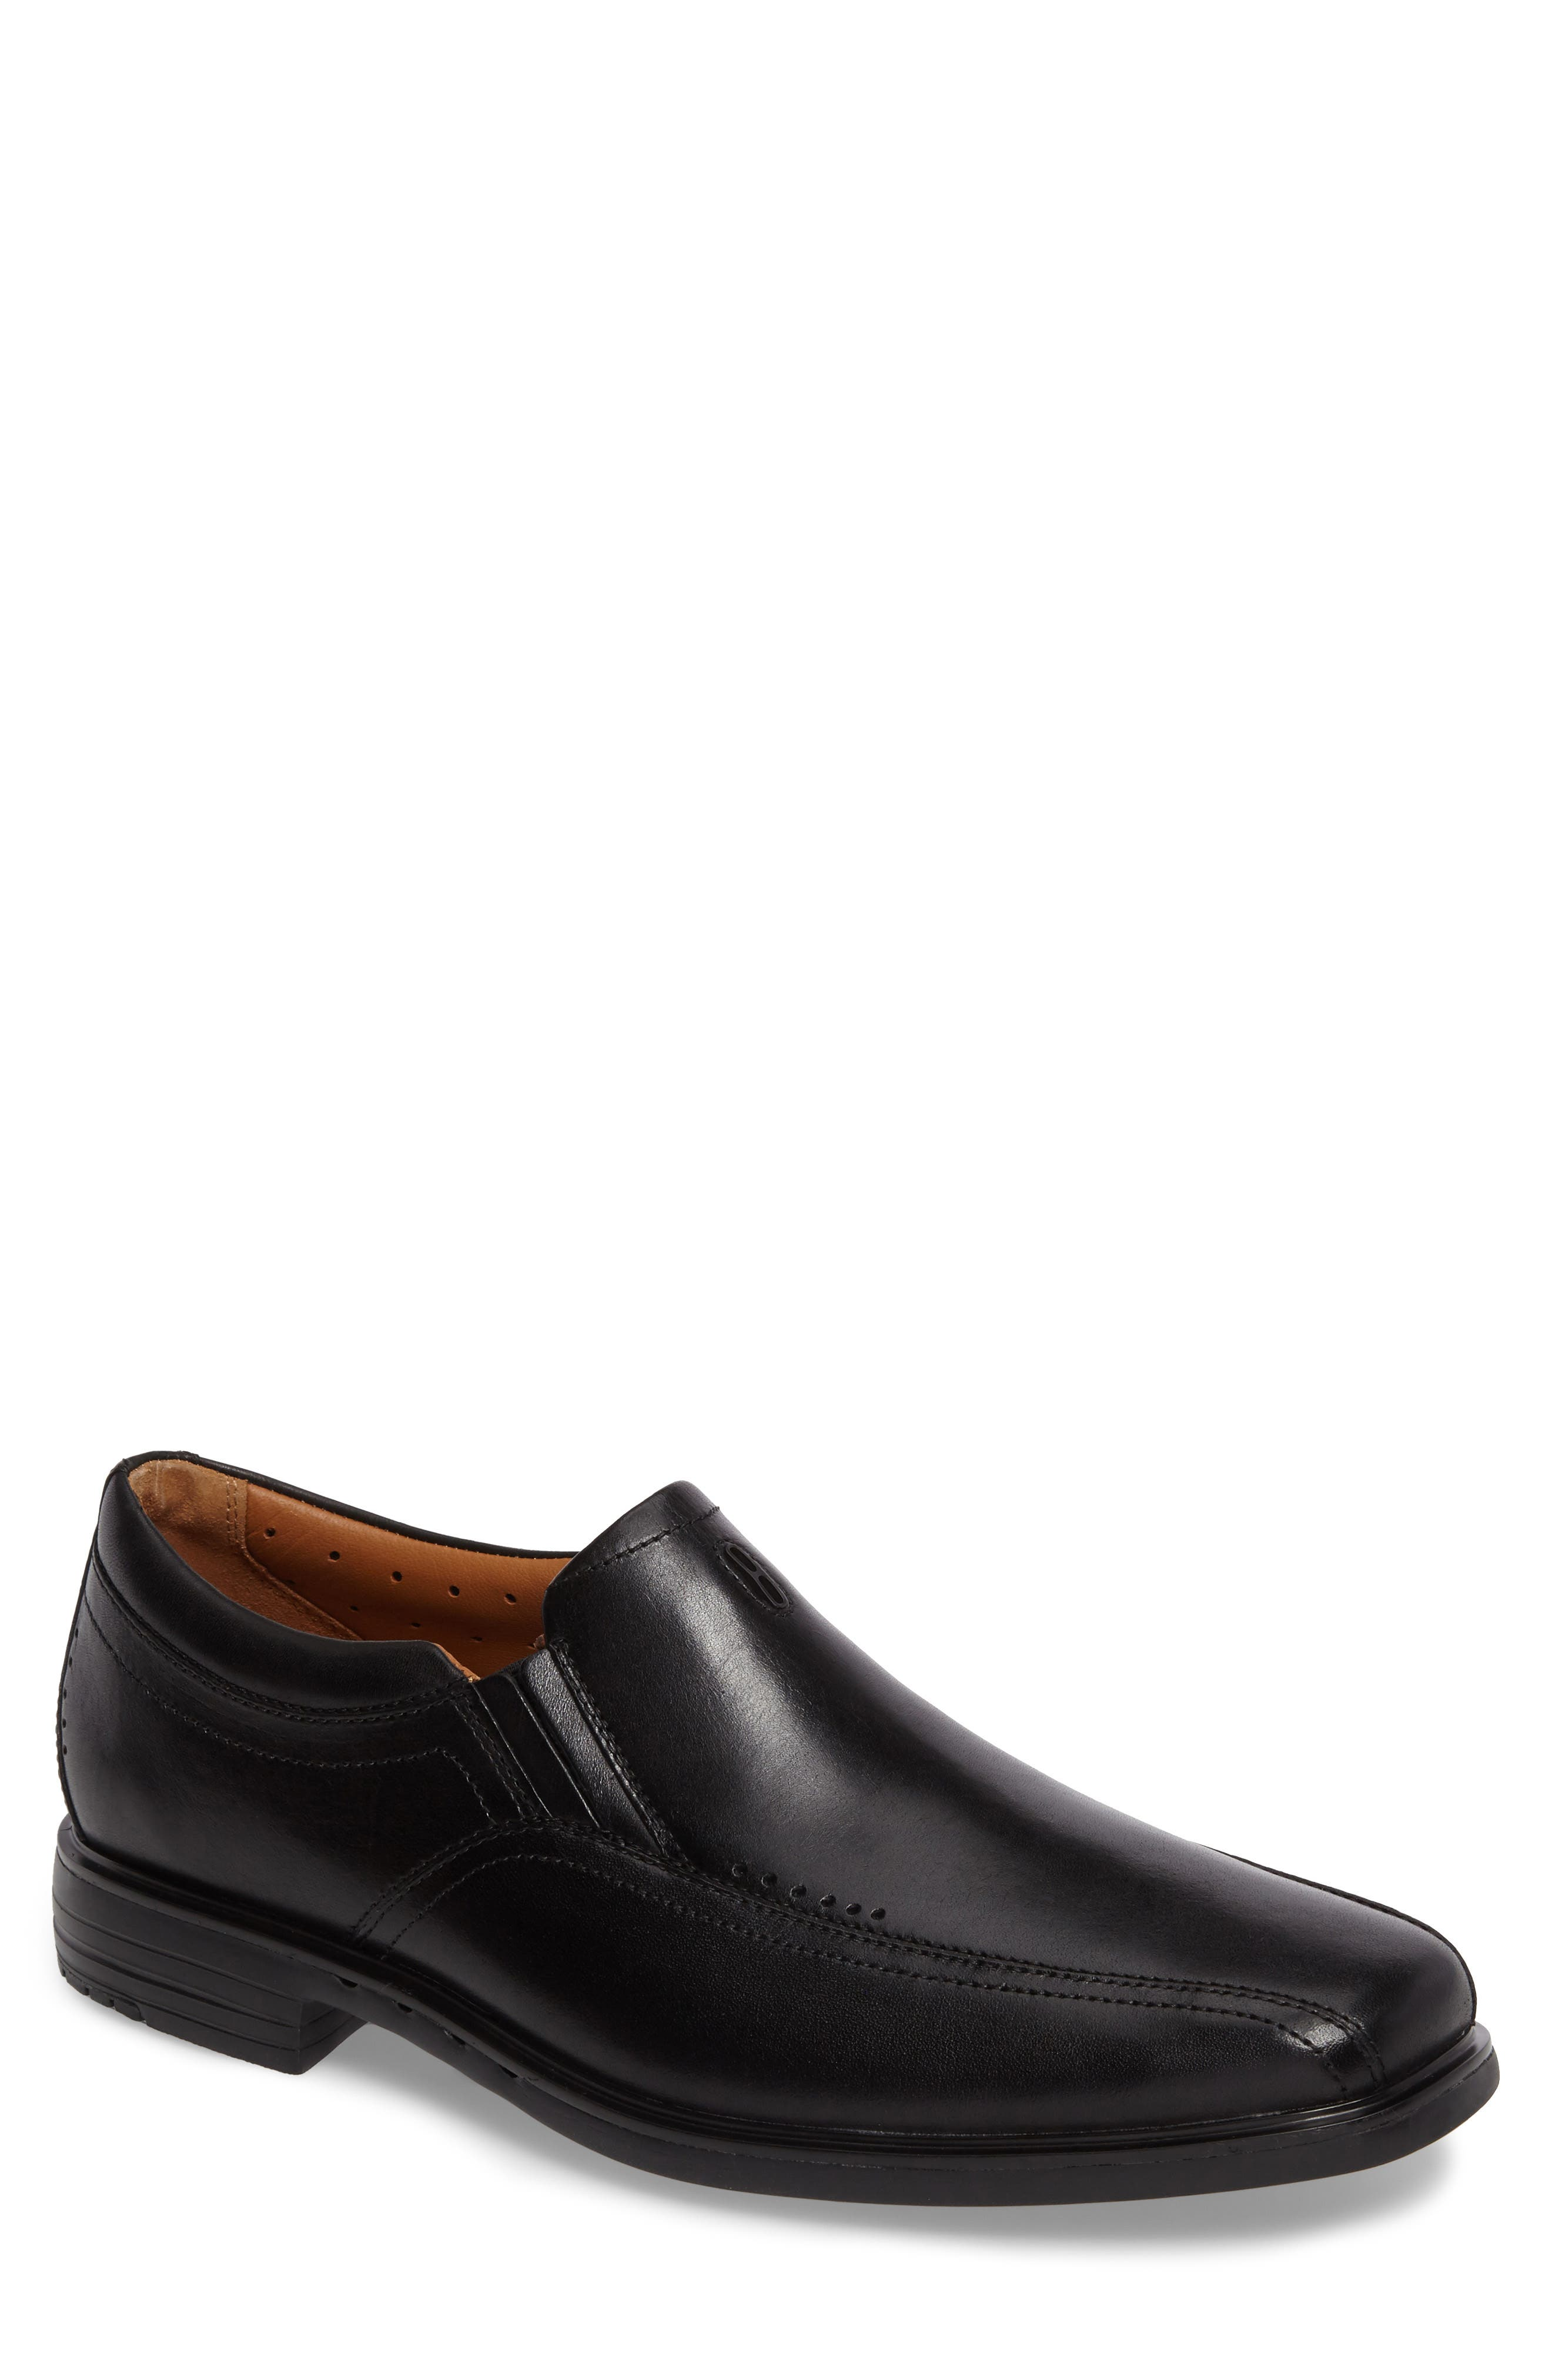 Un.Sheridan Go Loafer,                             Main thumbnail 1, color,                             BLACK LEATHER